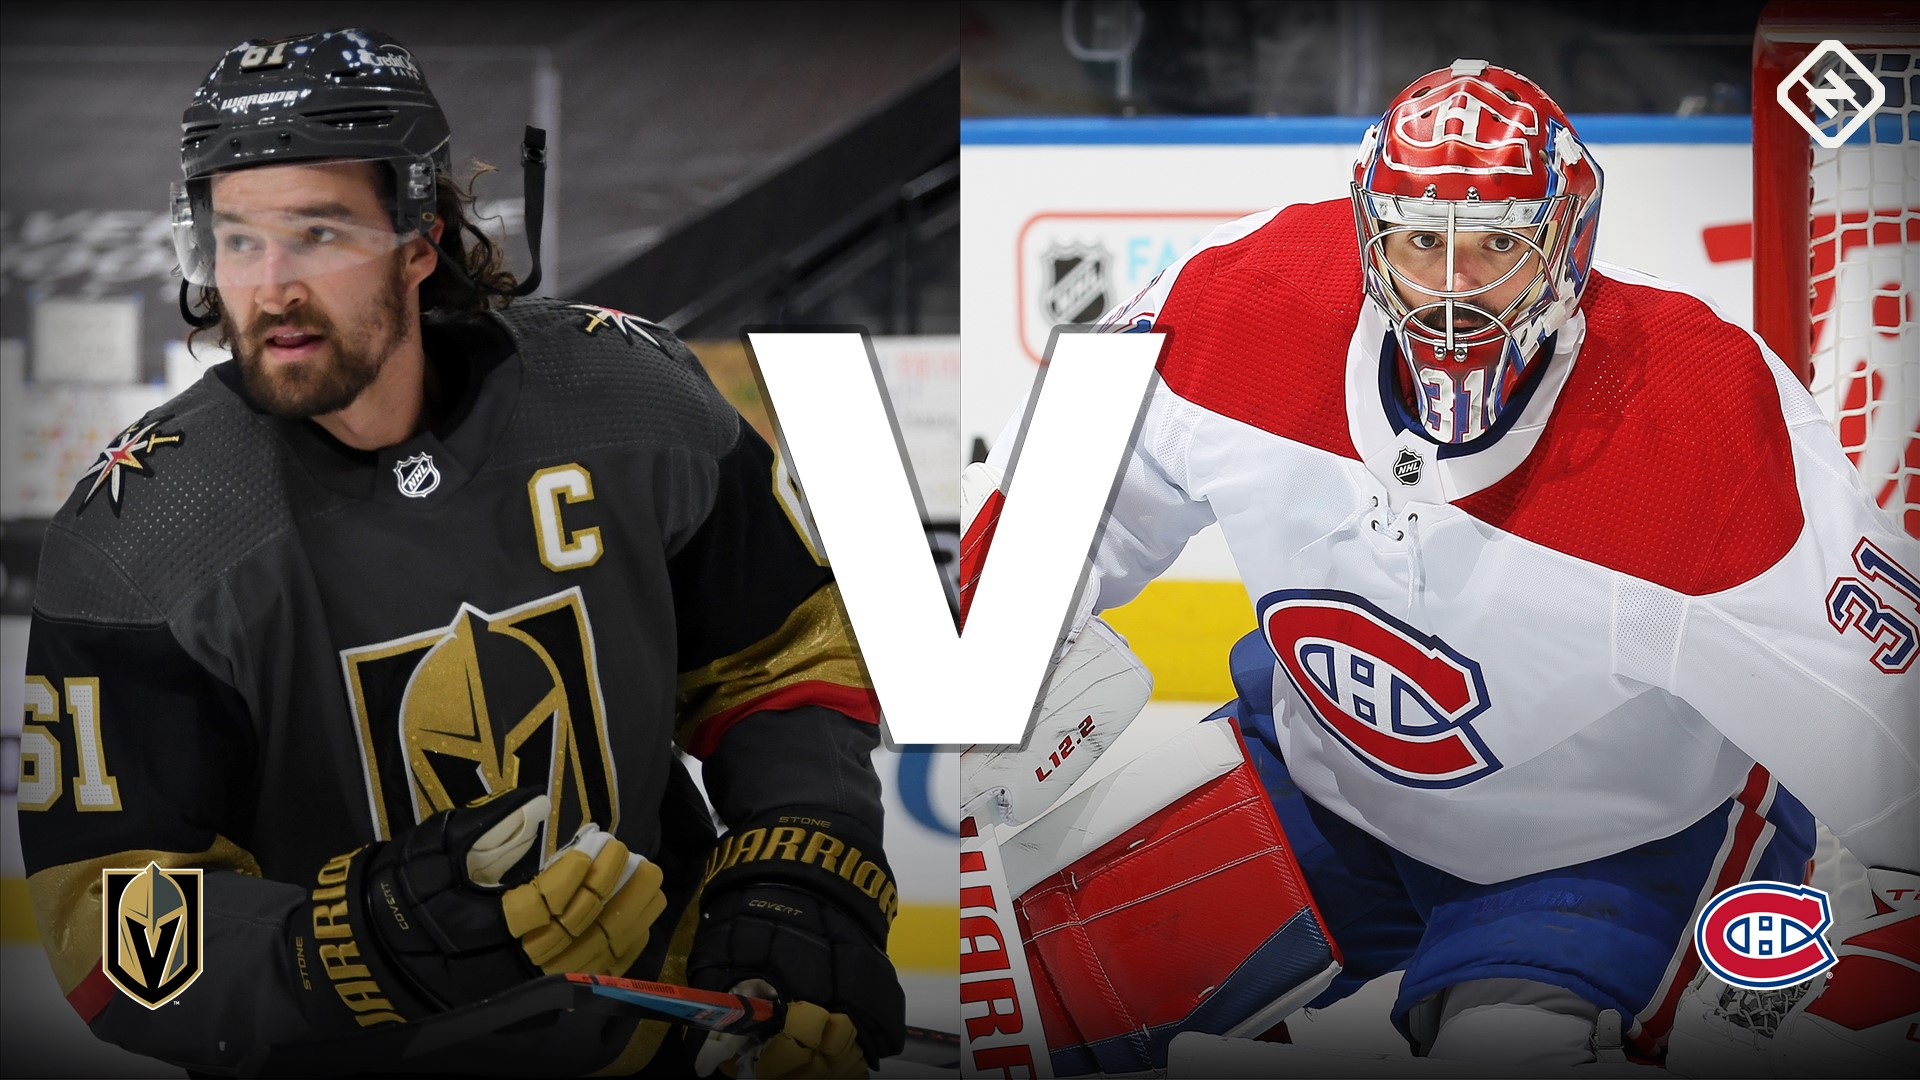 NHL playoffs 2021: Breakdown, predictions, odds for Golden Knights vs. Canadiens Stanley Cup semifinal